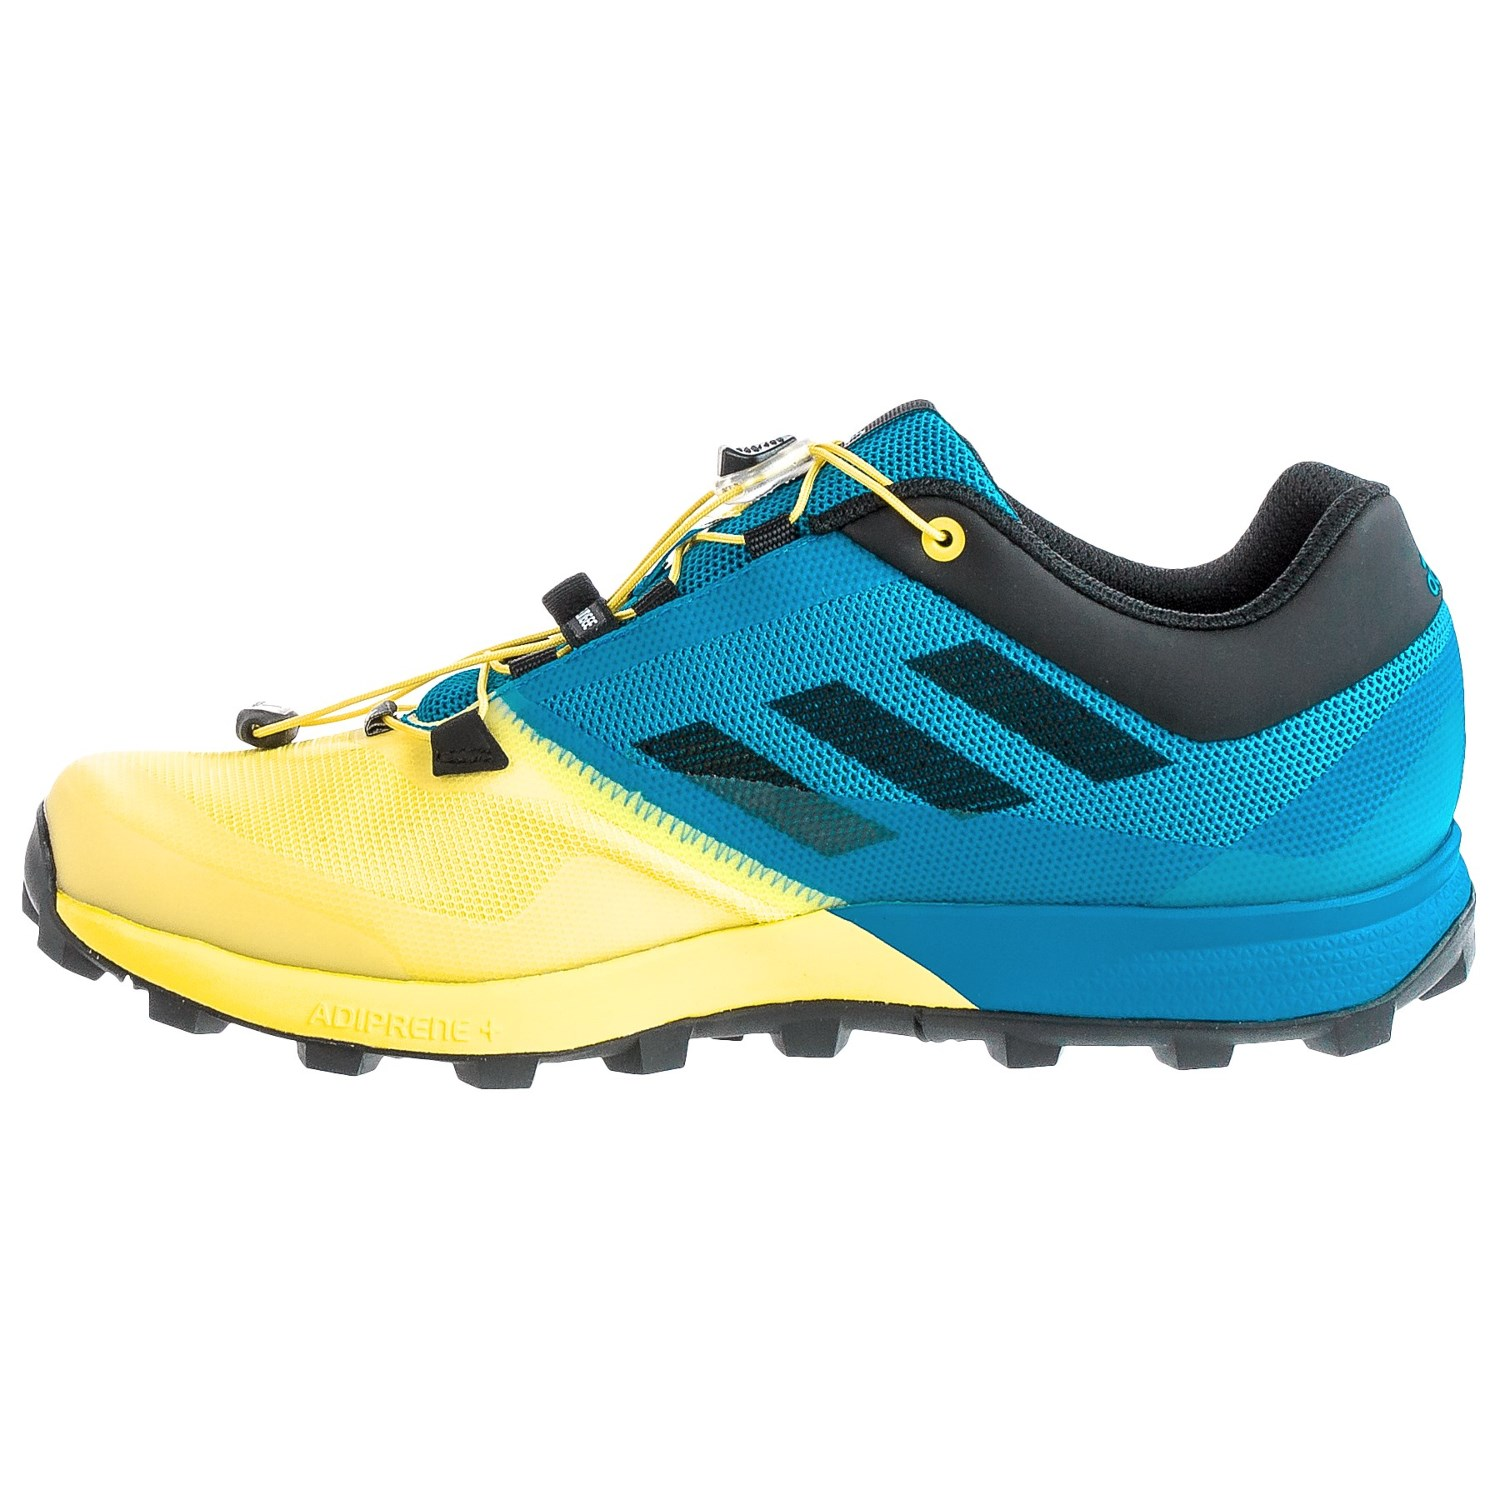 adidas terex running shoes mens